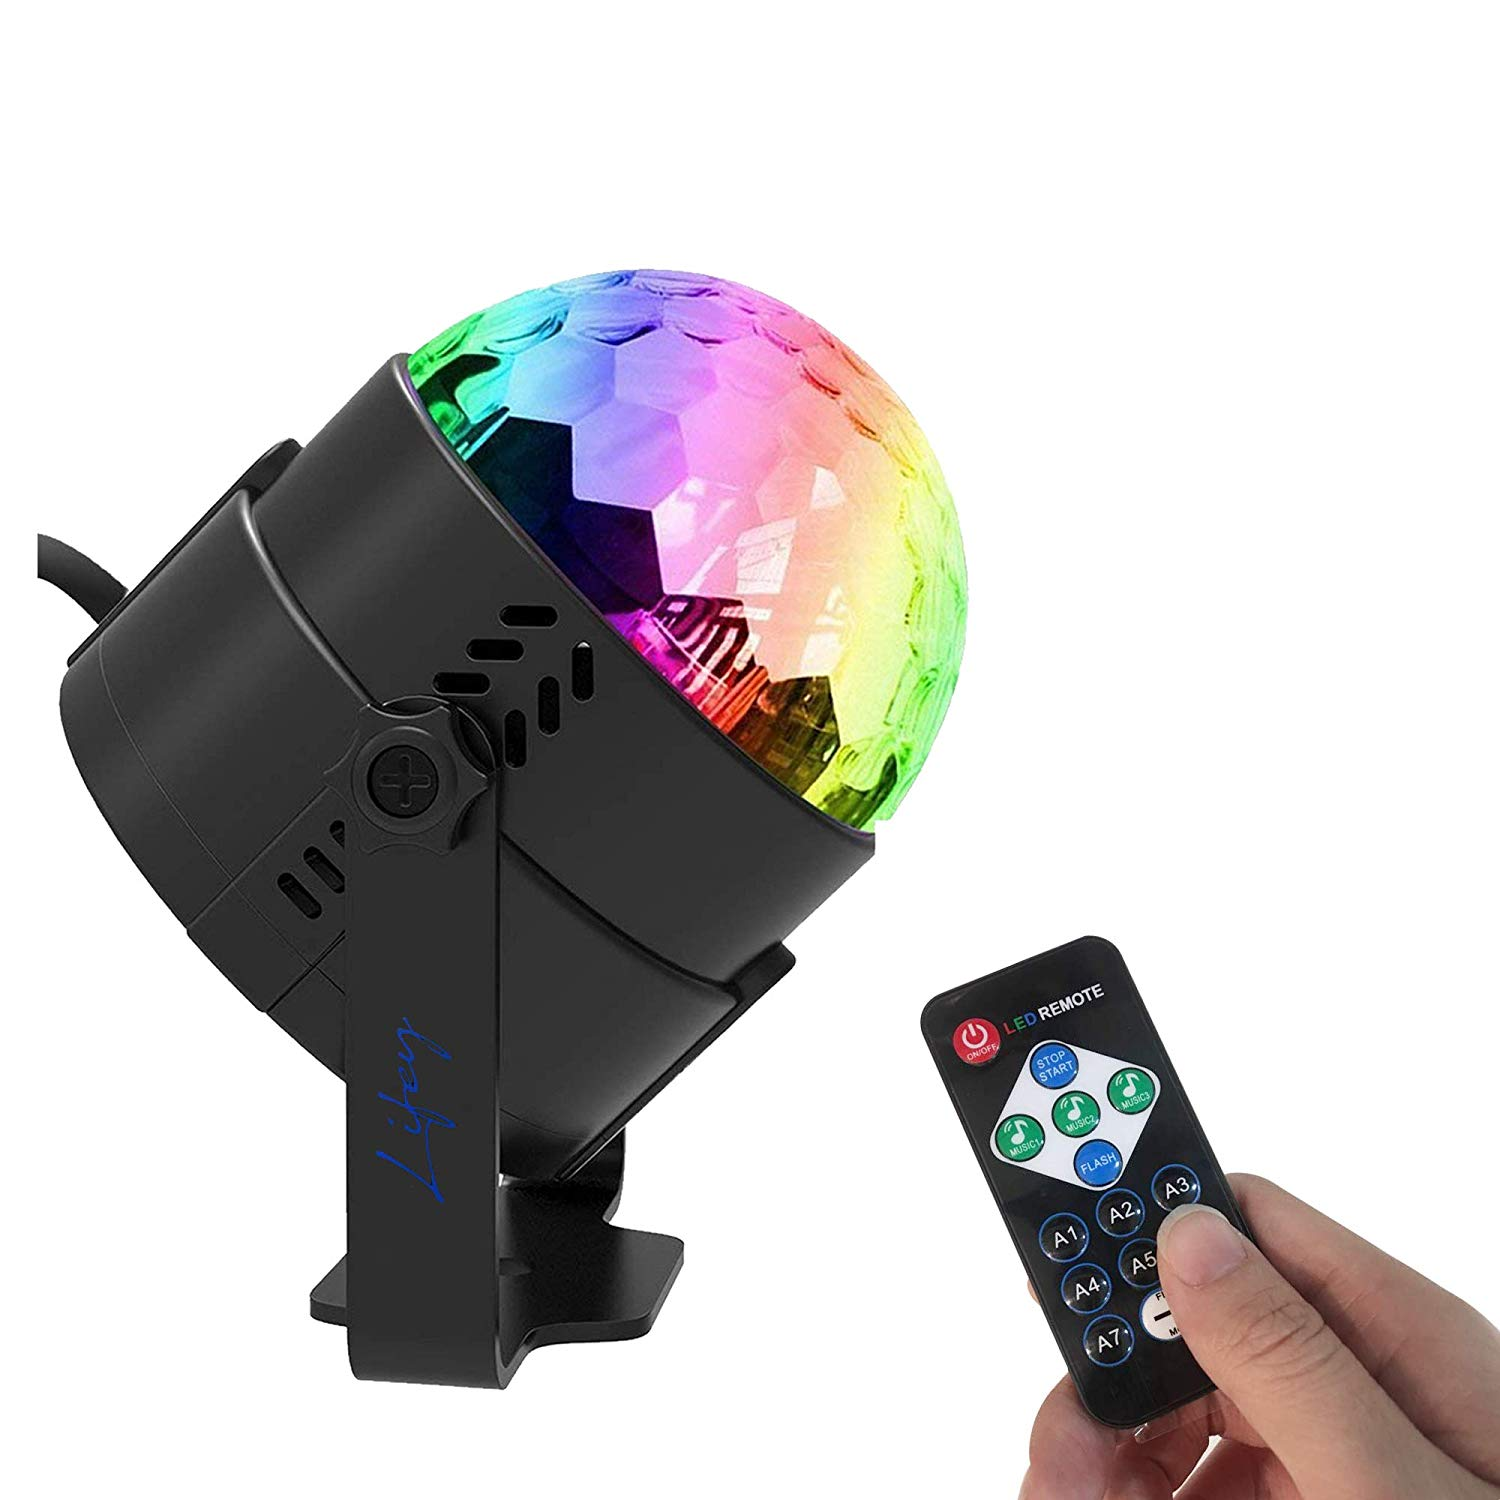 Lifey Sound Activated Party Lights with Remote Control Dj Lighting, RBG Disco Ball, Strobe Lamp 7 Modes Stage Par Light for Home Room Dance Parties Birthday DJ Bar Karaoke Xmas Wedding Show Club Pub